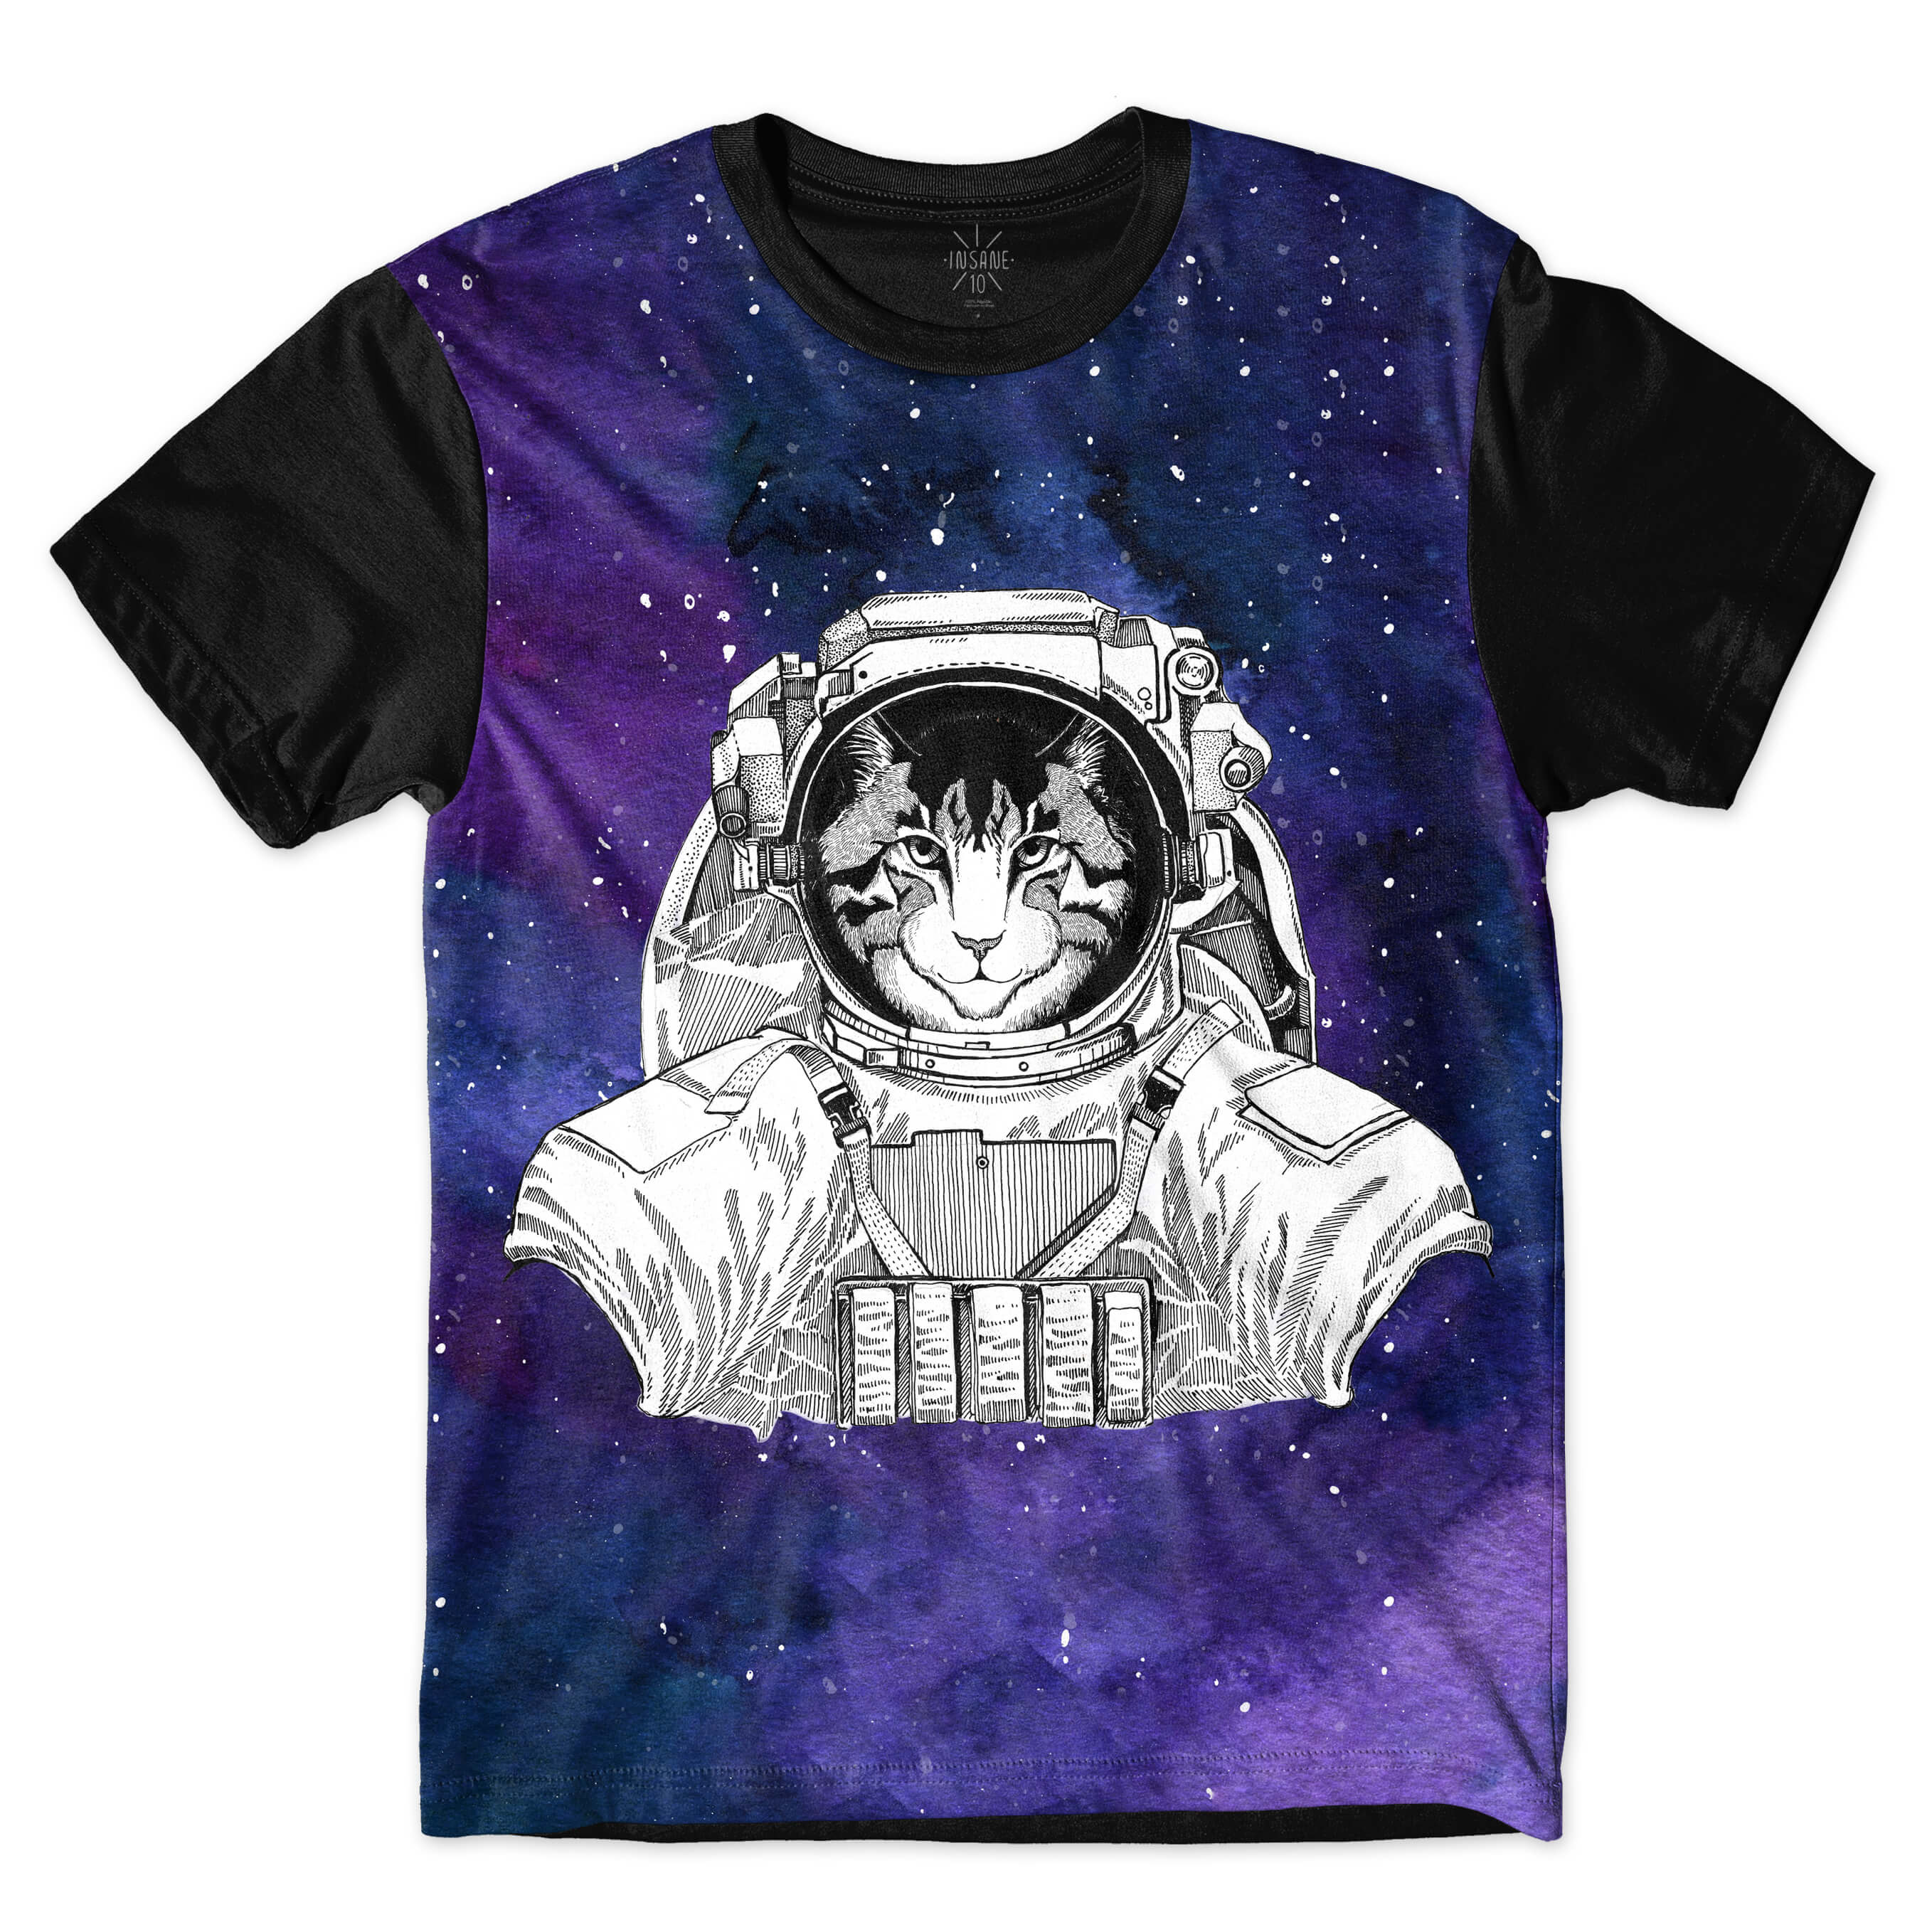 Camiseta Insane 10 Animal Astronauta Gato no Espaço Full Print Azul